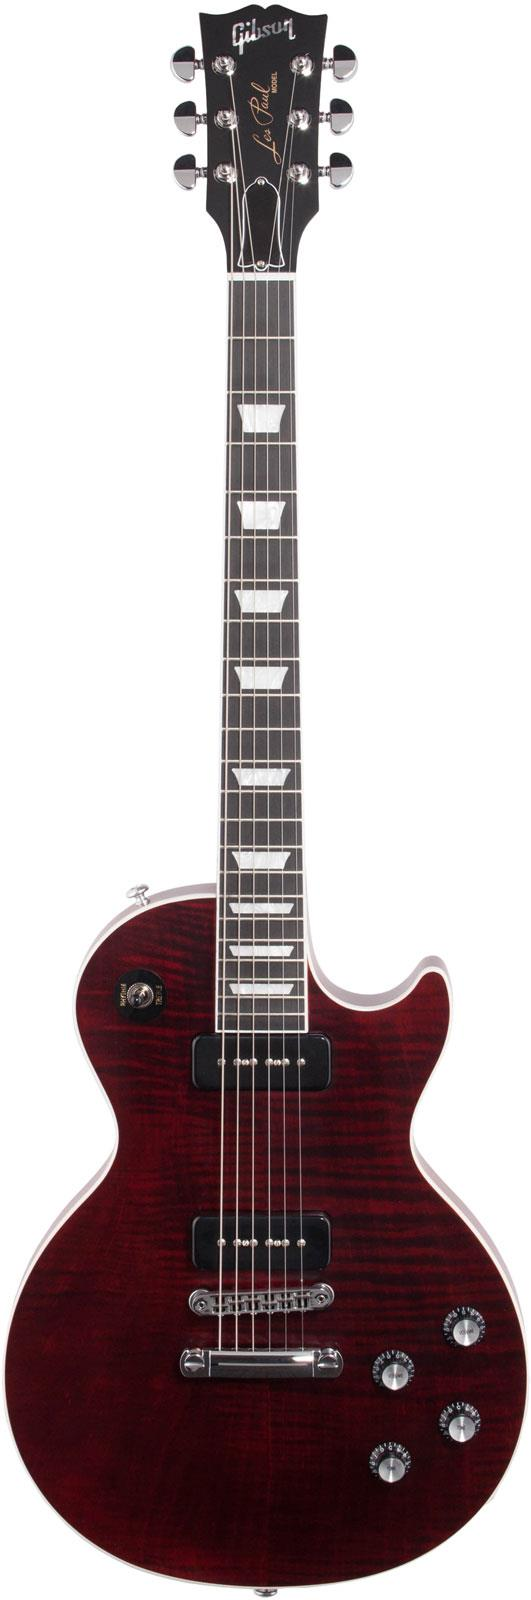 gibson-les-paul-classic-vintage-beautiful-hot-blonde